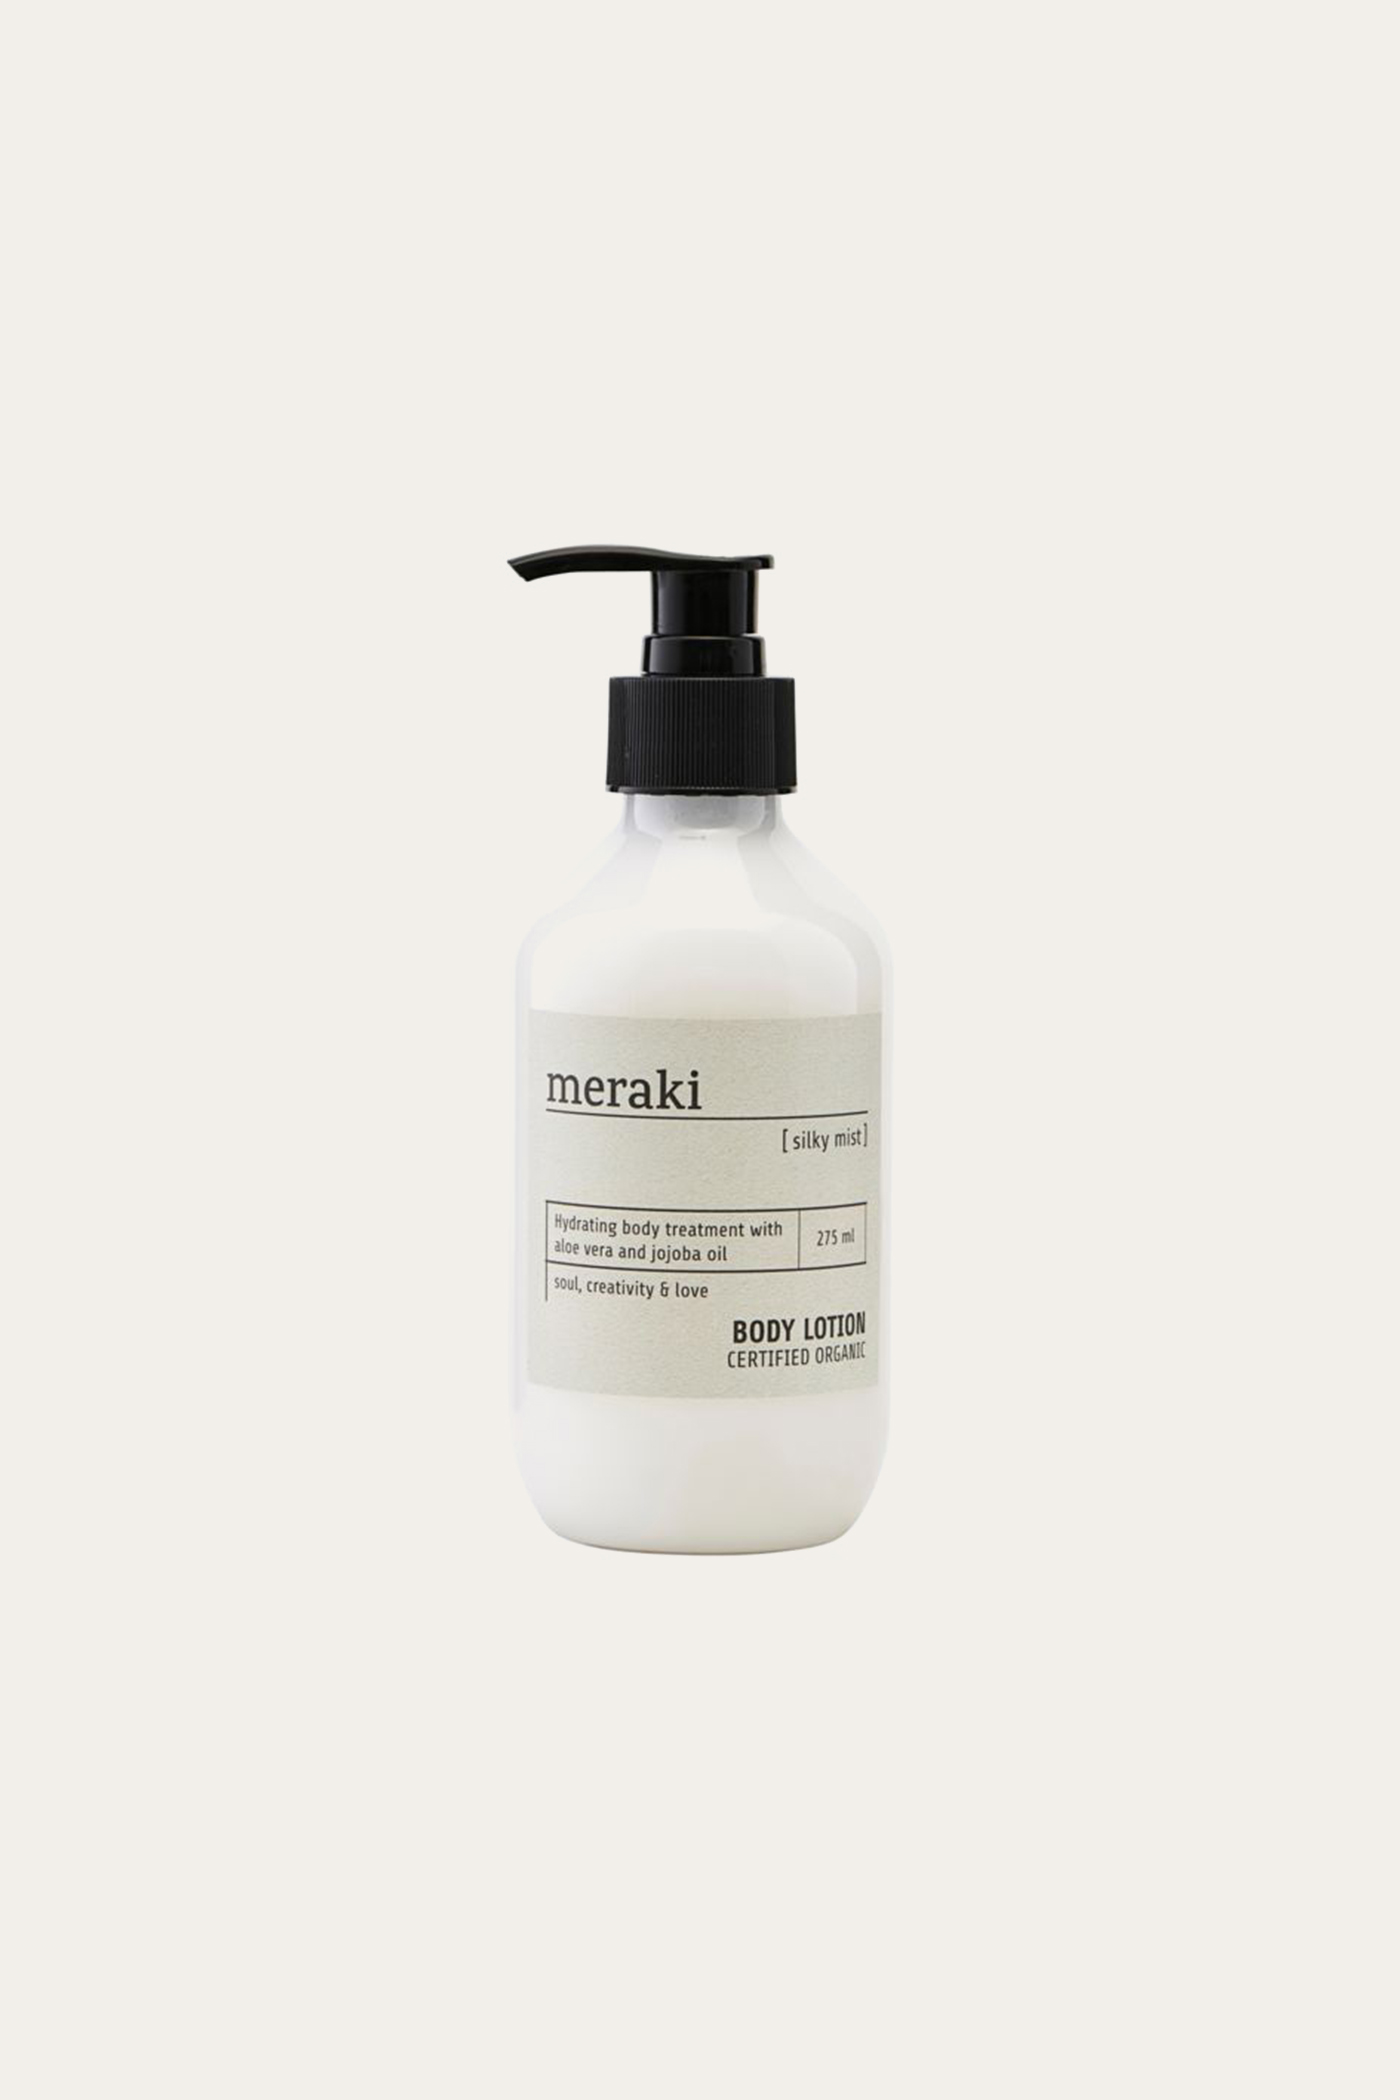 Meraki Body Lotion